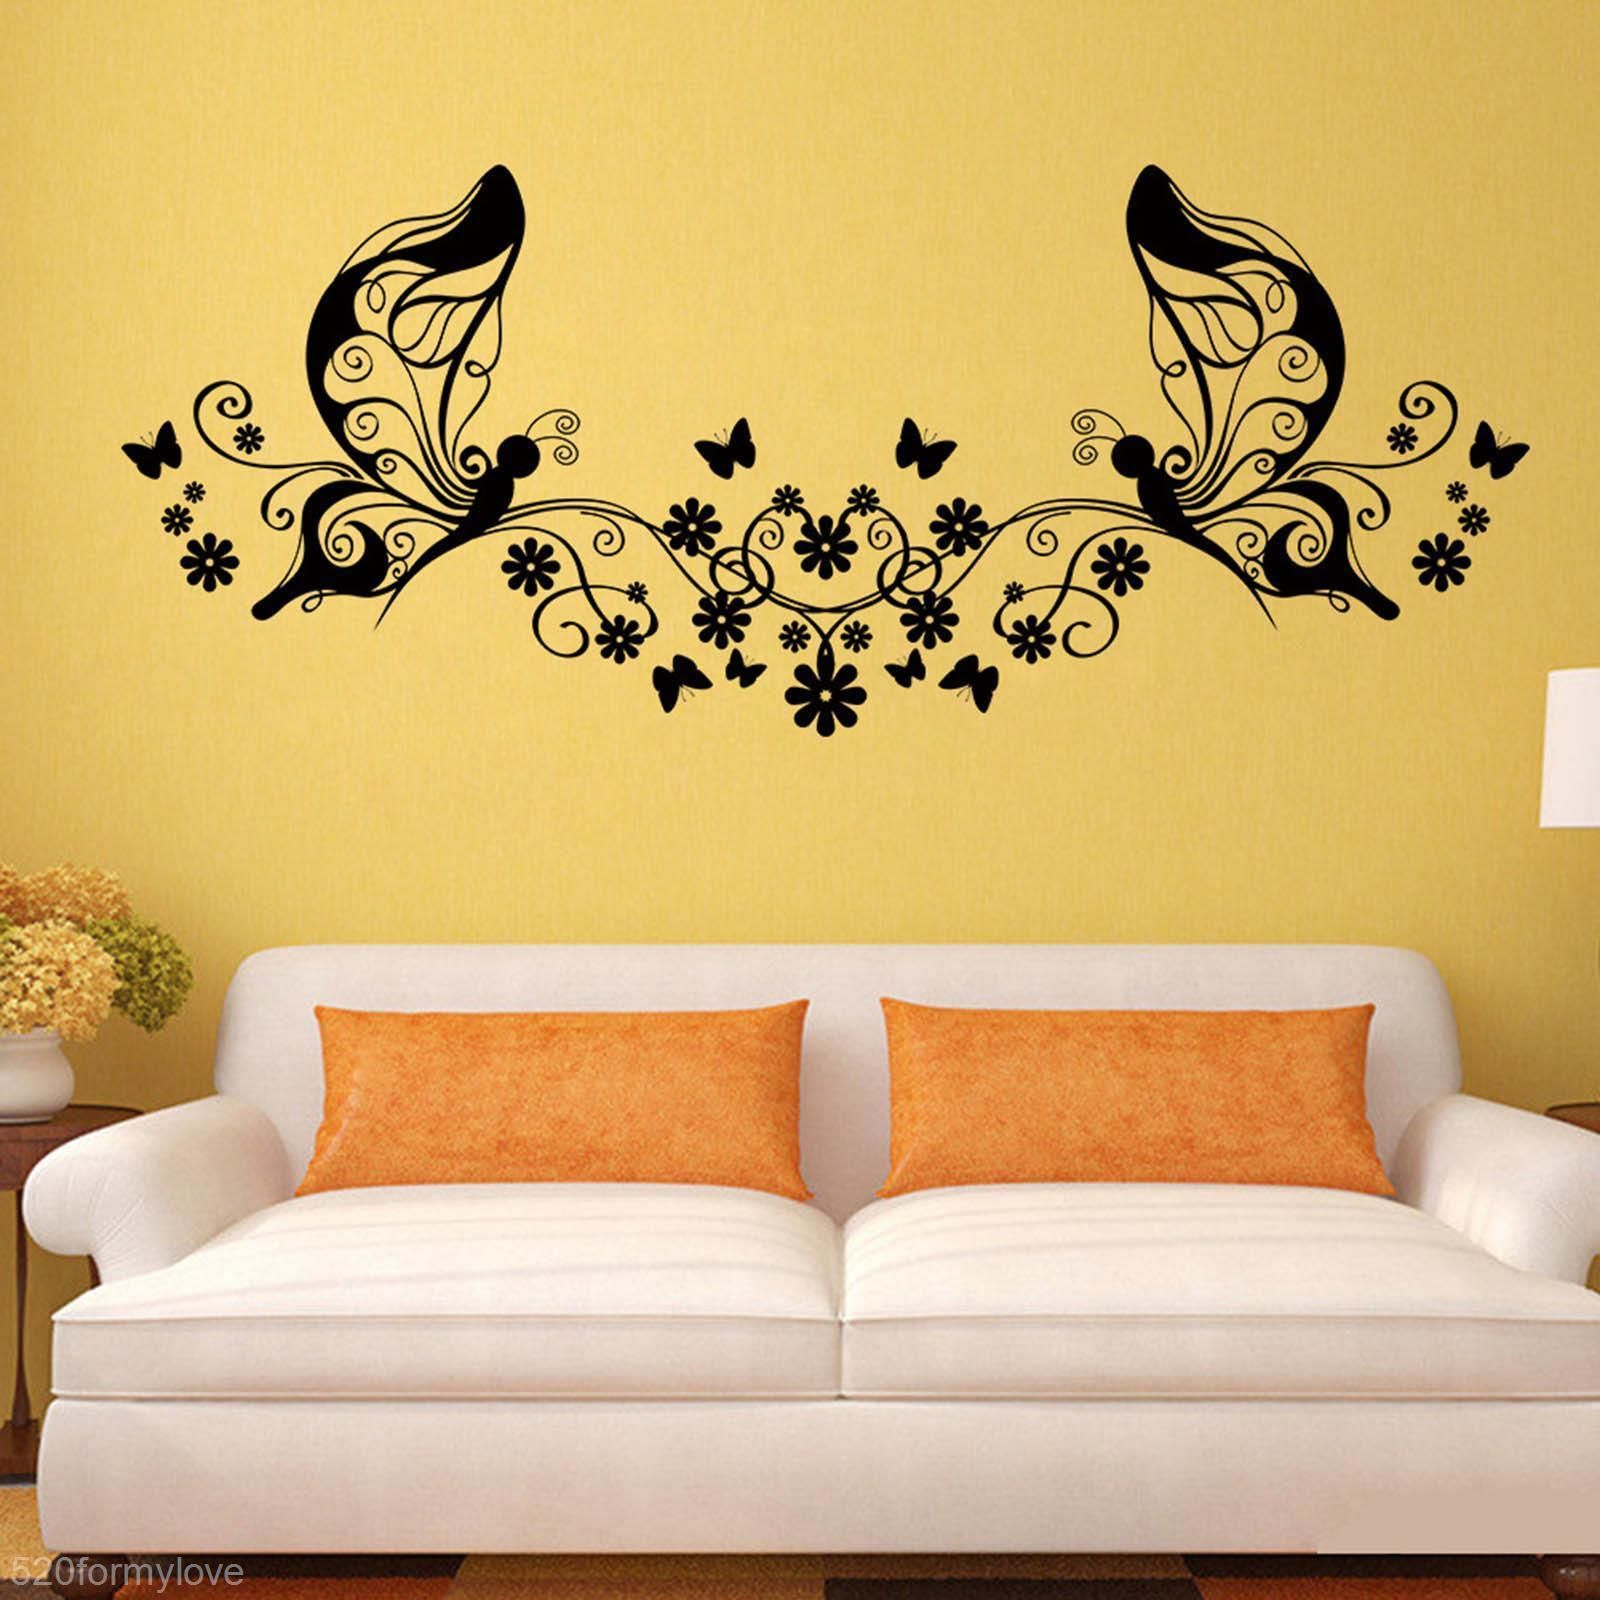 Removable Home Room Diy Decor Butterfly Wall Art Mural Decal Sticker ...